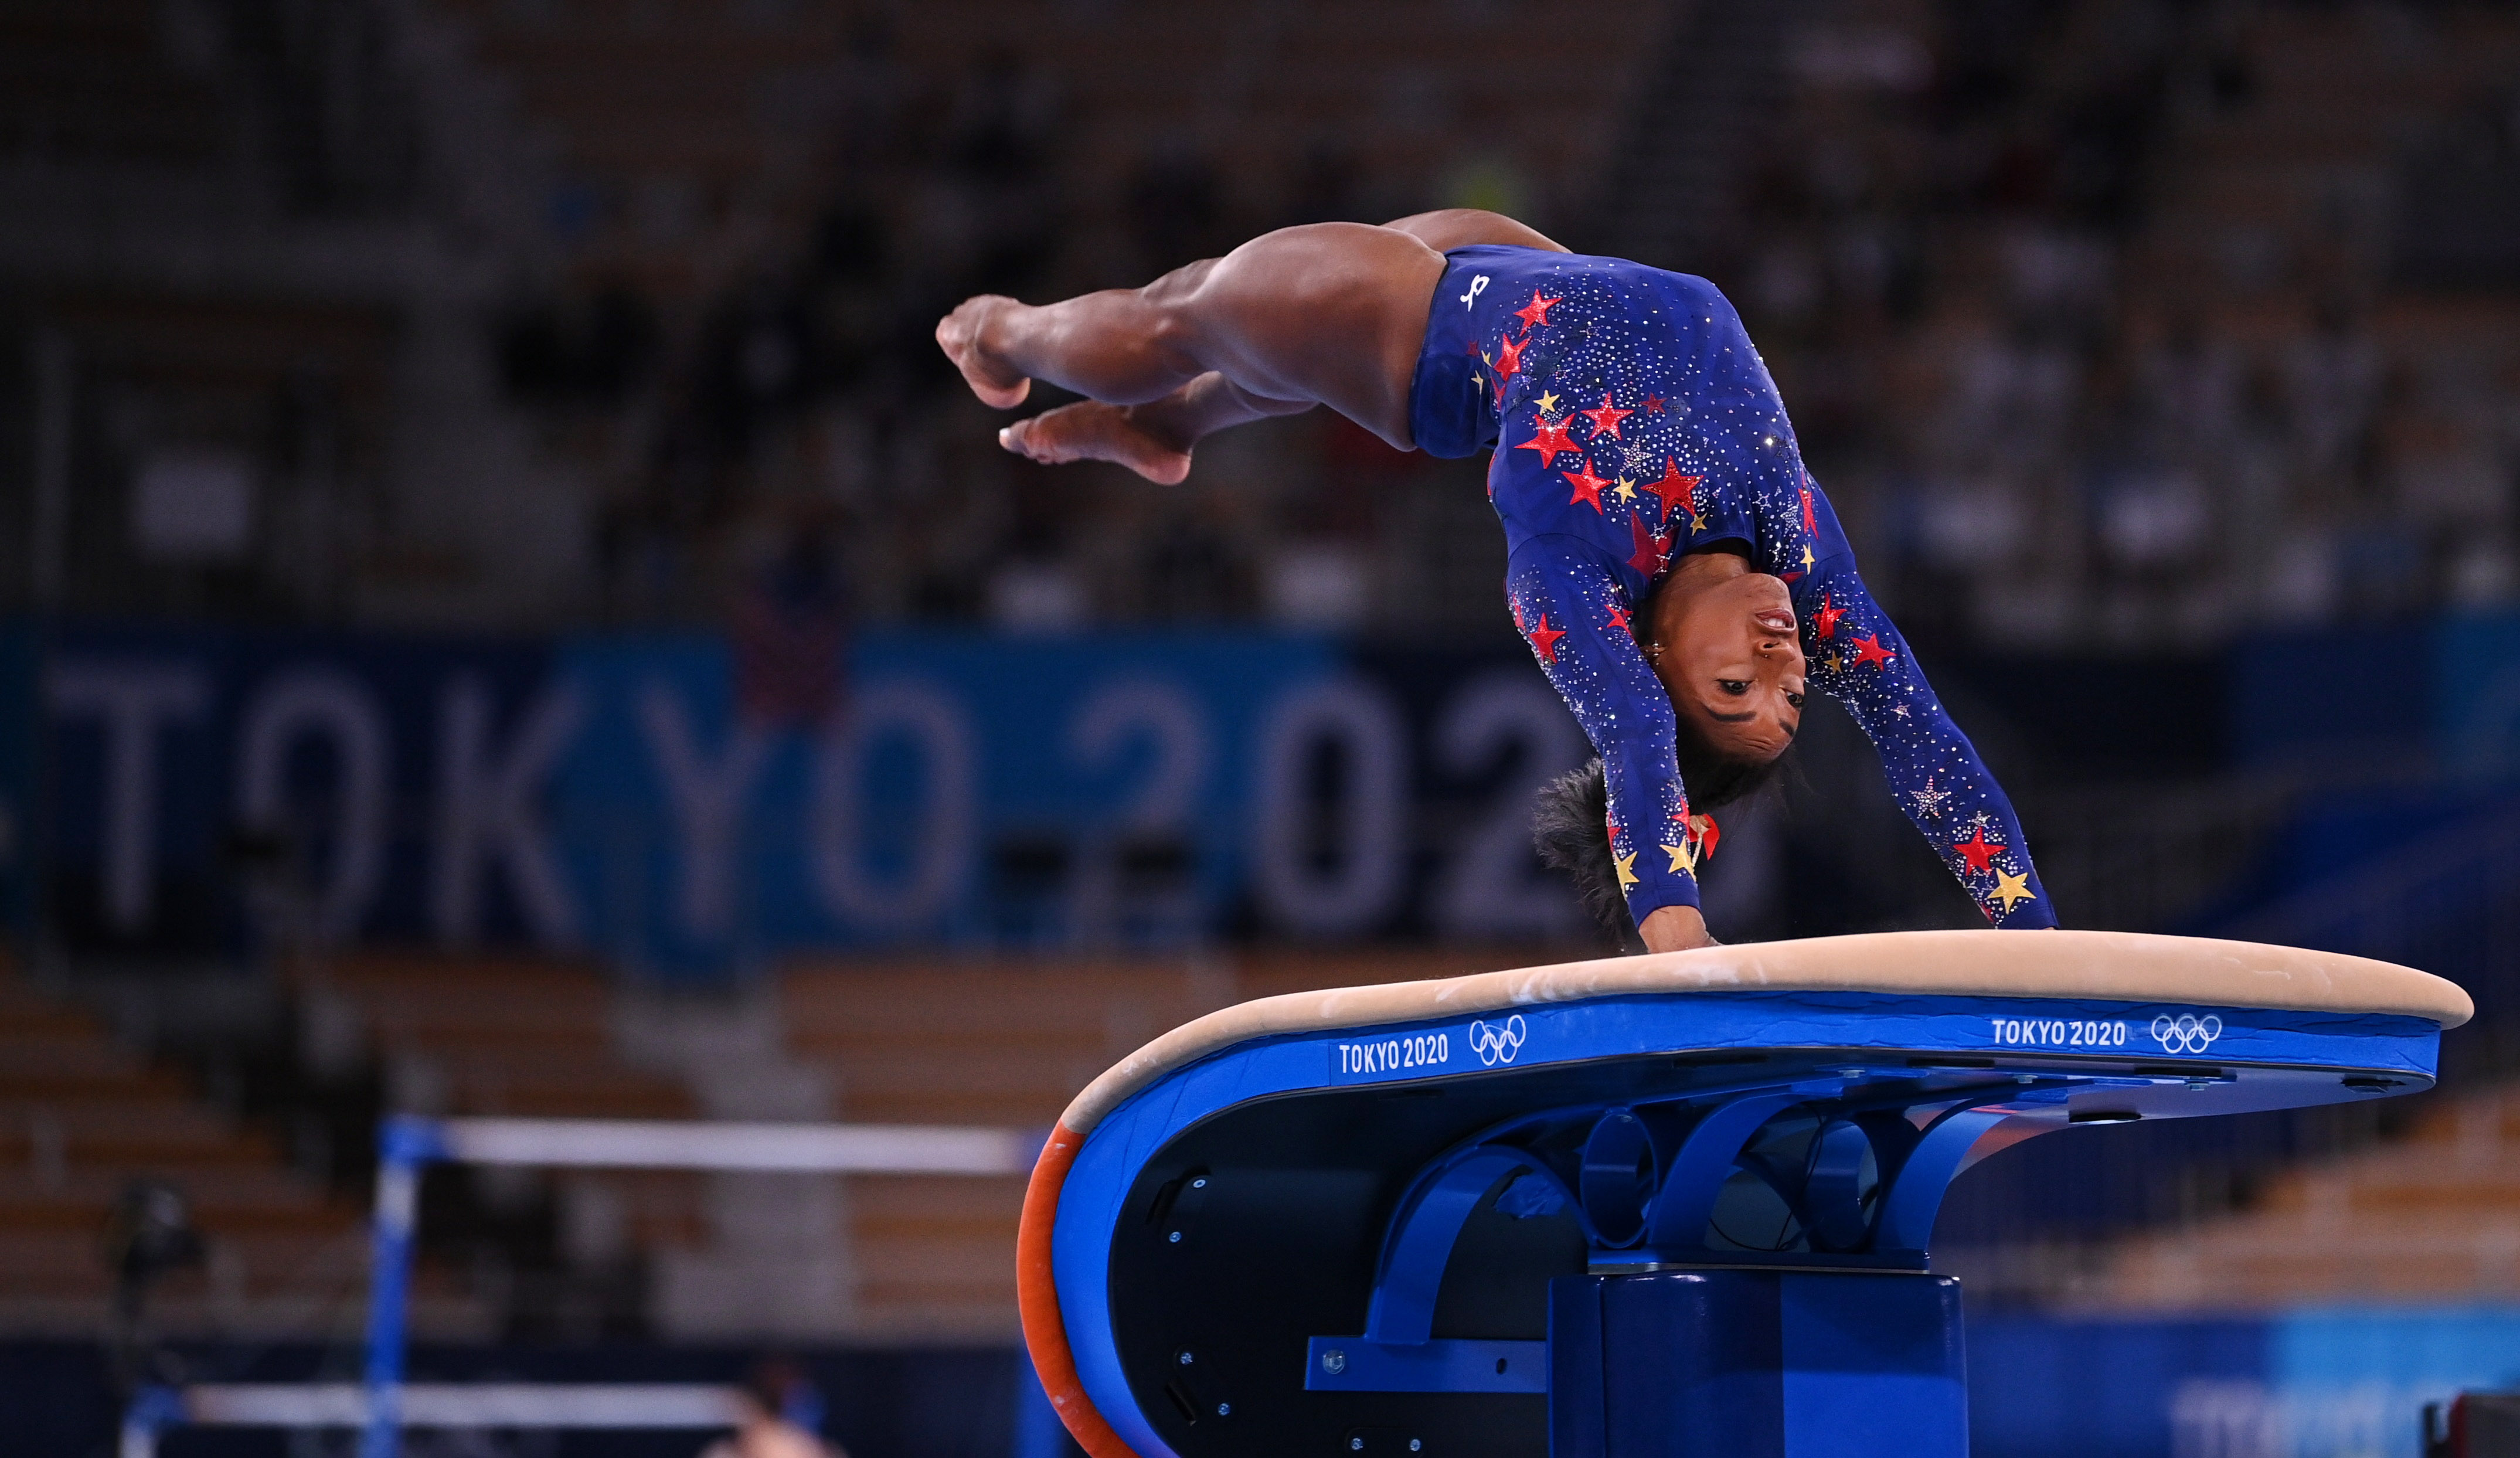 Tokyo 2020 Olympics - Gymnastics - Artistic - Women's Vault - Qualification - Ariake Gymnastics Centre, Tokyo, Japan - July 25, 2021. Simone Biles of the United States in action on the vault. REUTERS/Dylan Martinez